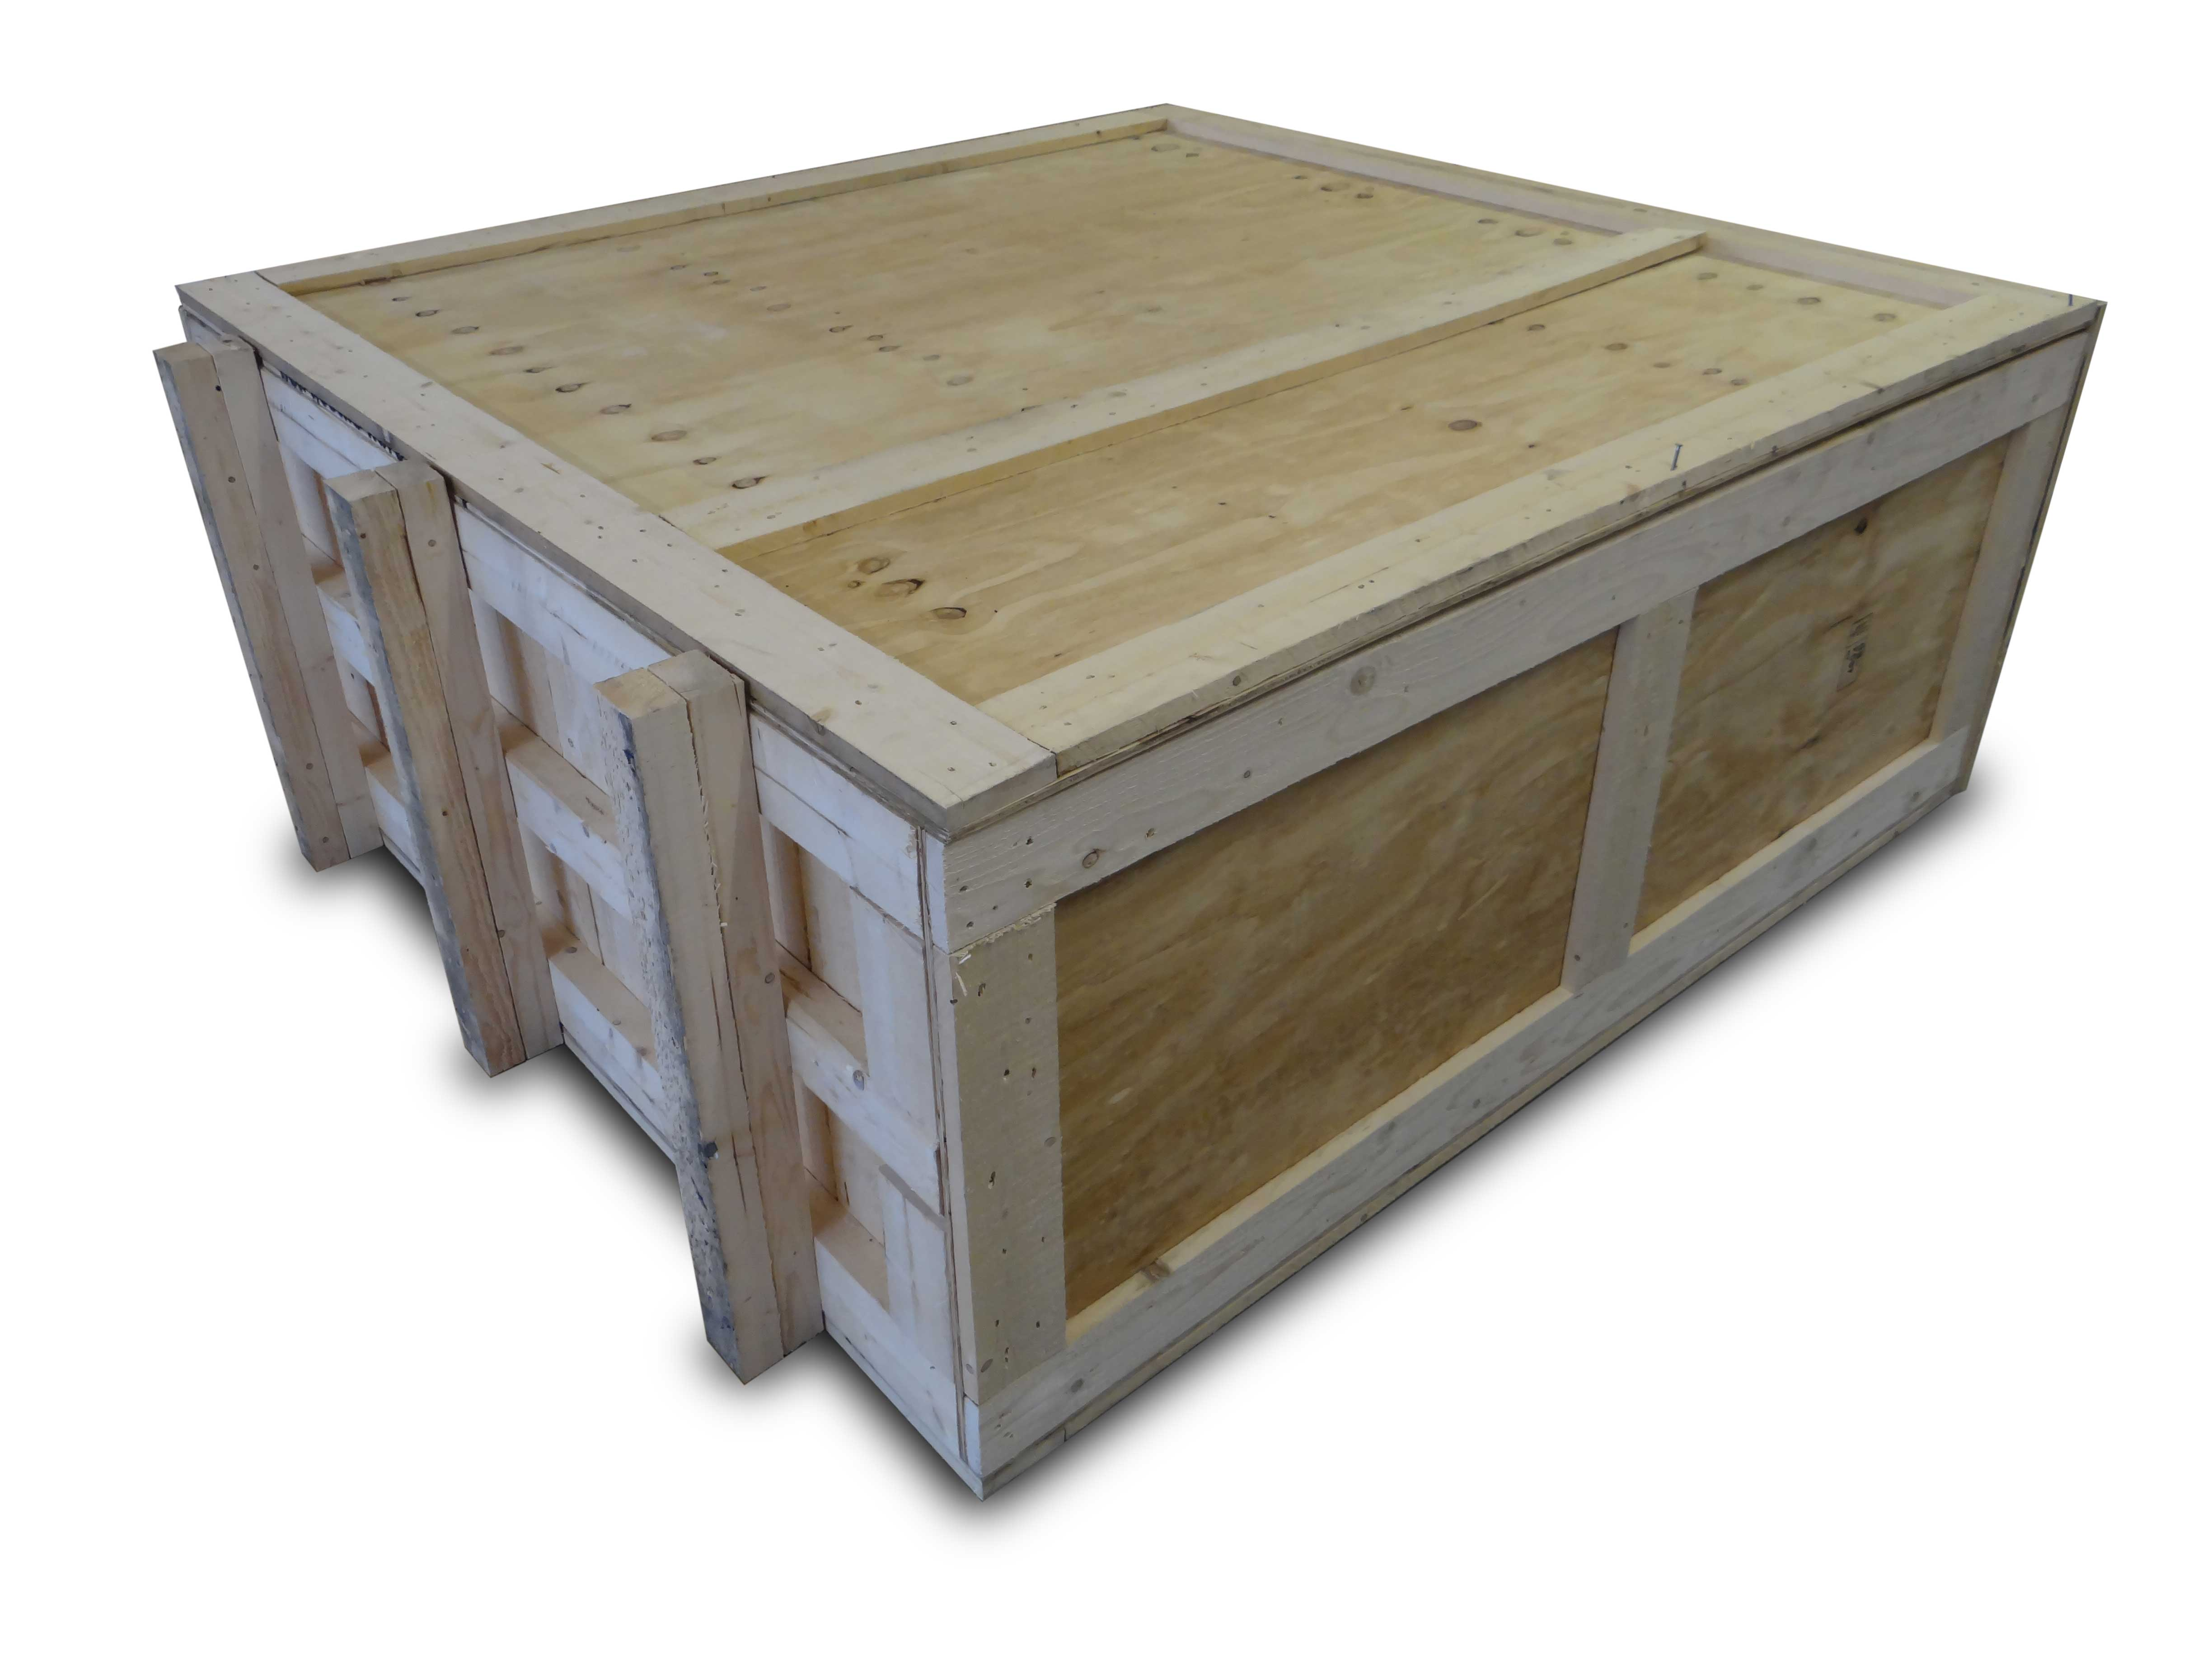 Bespoke wooden shipping crate flight cases waterproof for Metal shipping crate